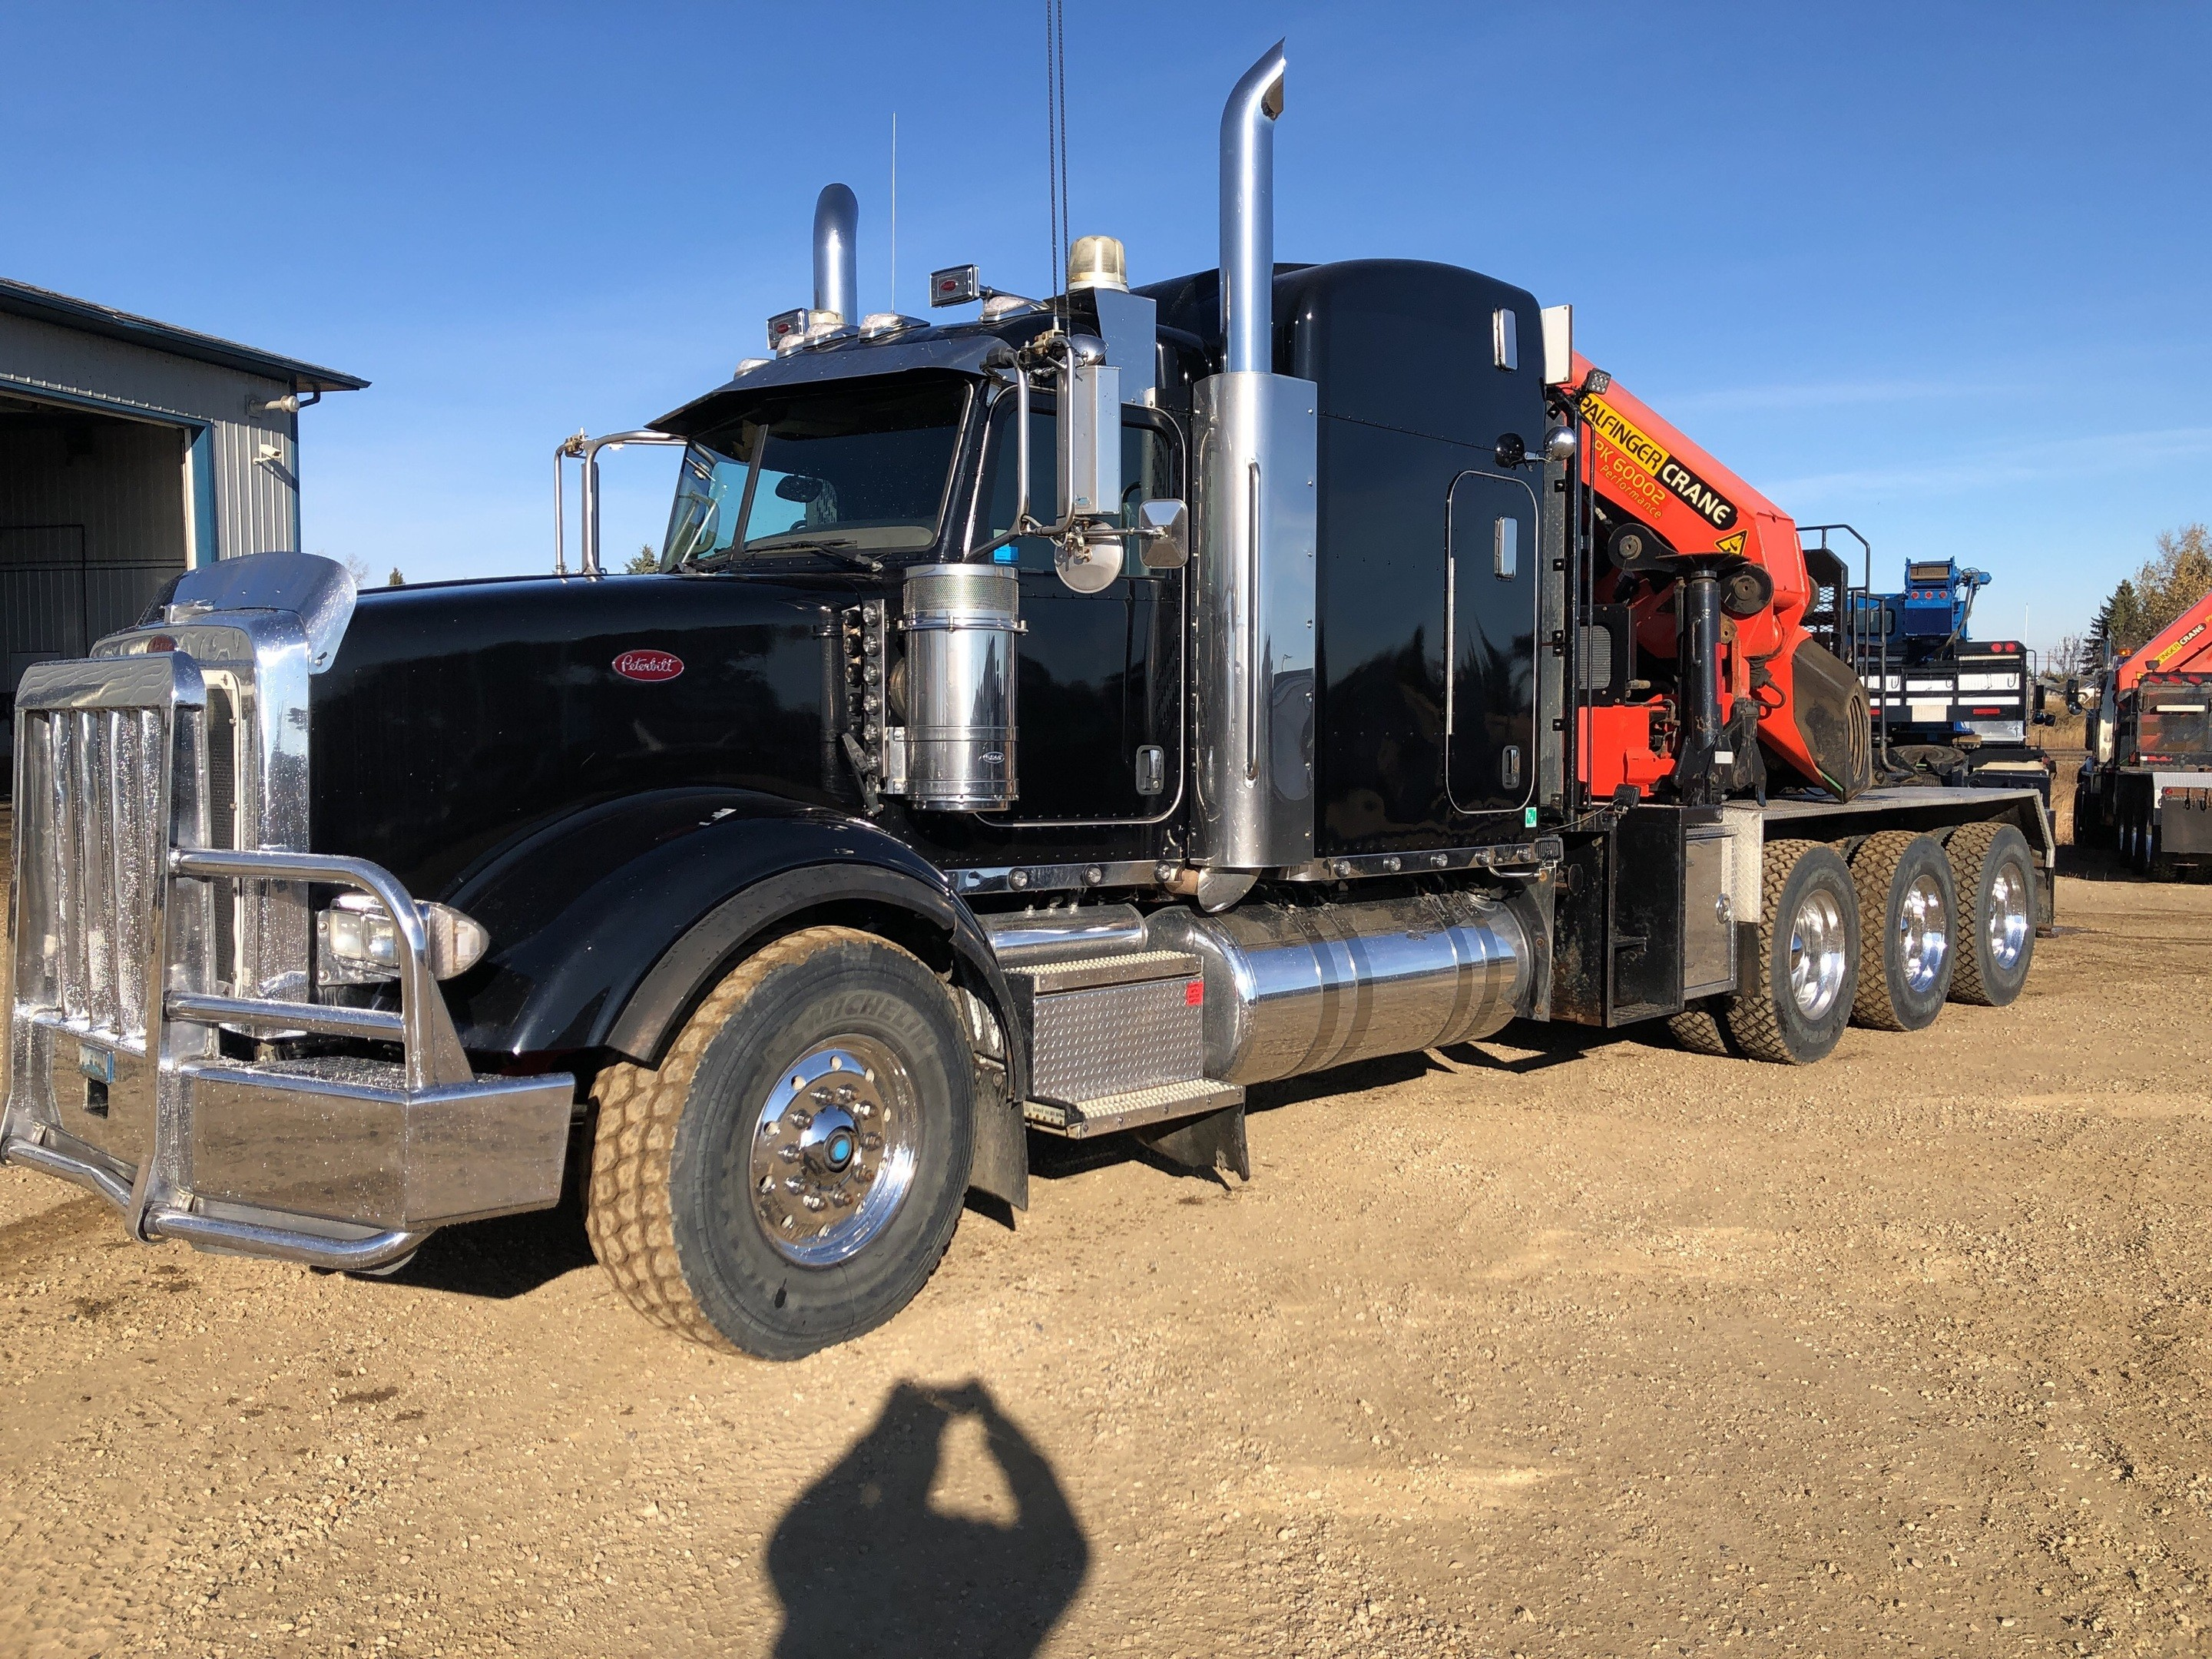 Peterbilt 2012 Air Brake System 2012 Peterbilt 379 Tri Drive W Palfinger Pk Knuckle Boom Of Peterbilt 2012 Air Brake System